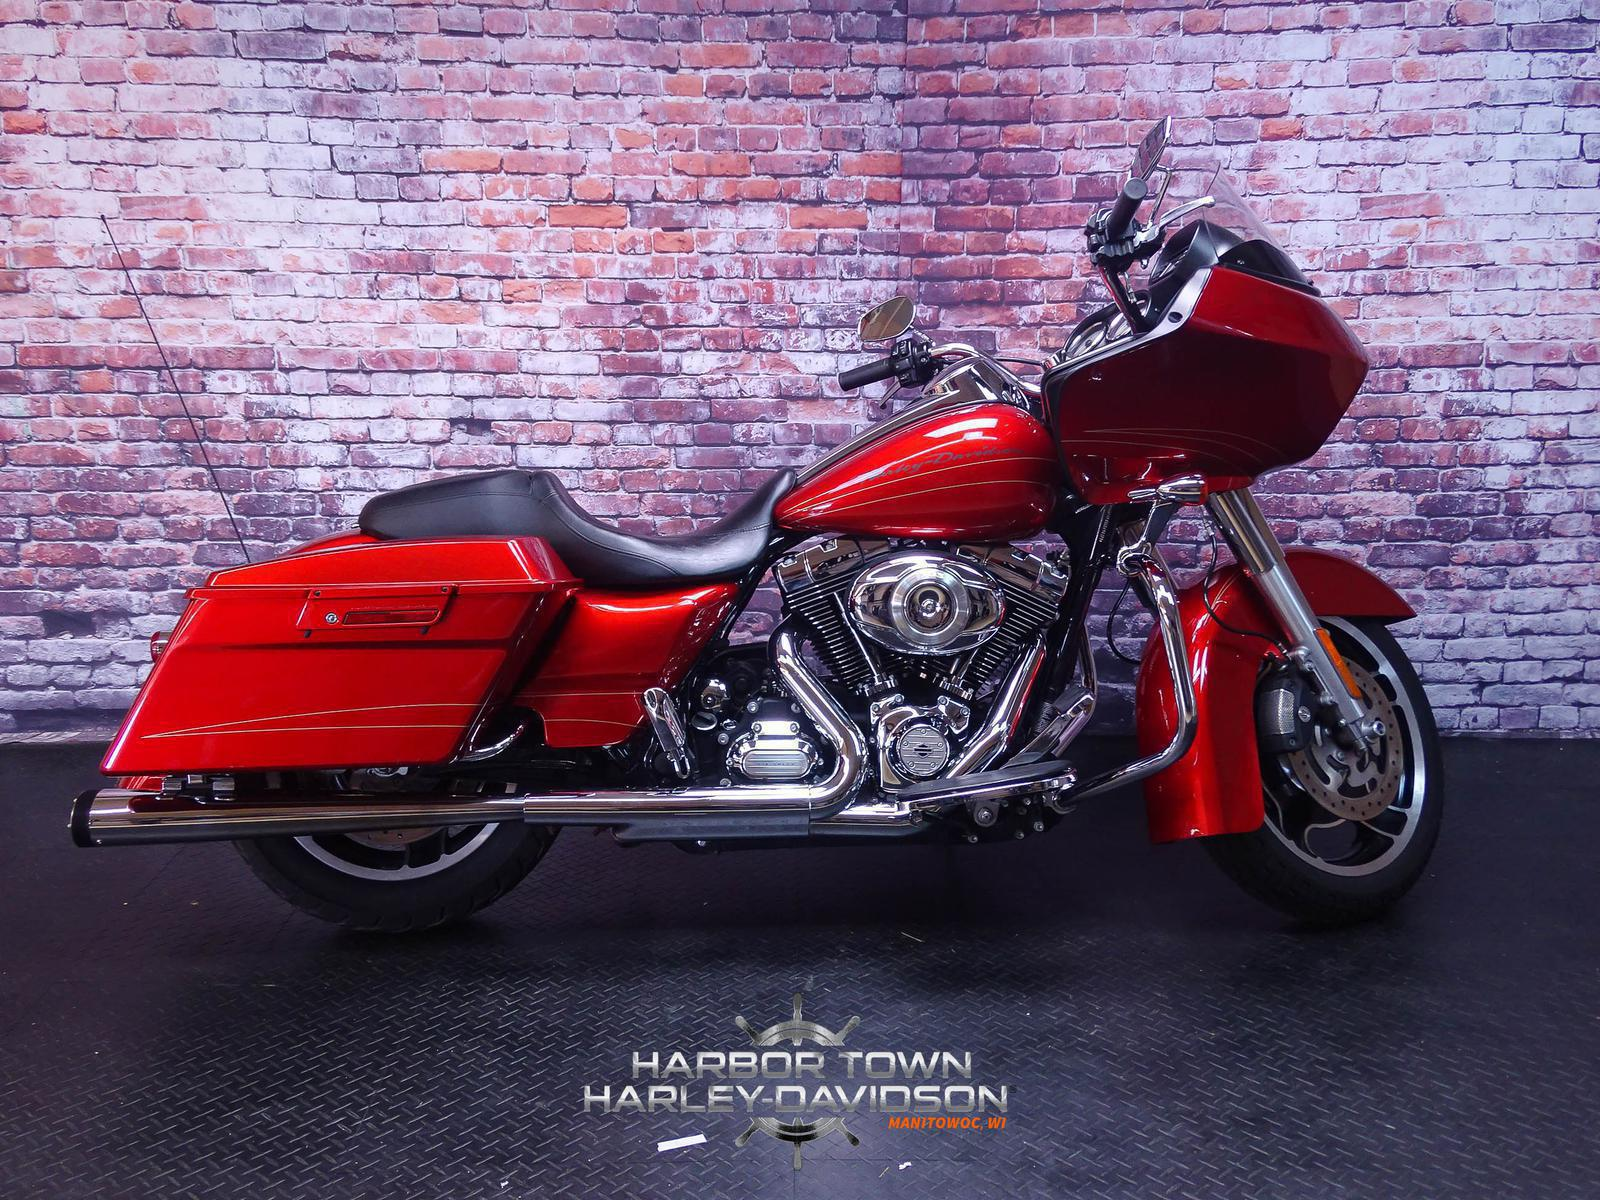 DSC04545 2013 harley davidson� road glide custom for sale in manitowoc, wi  at n-0.co